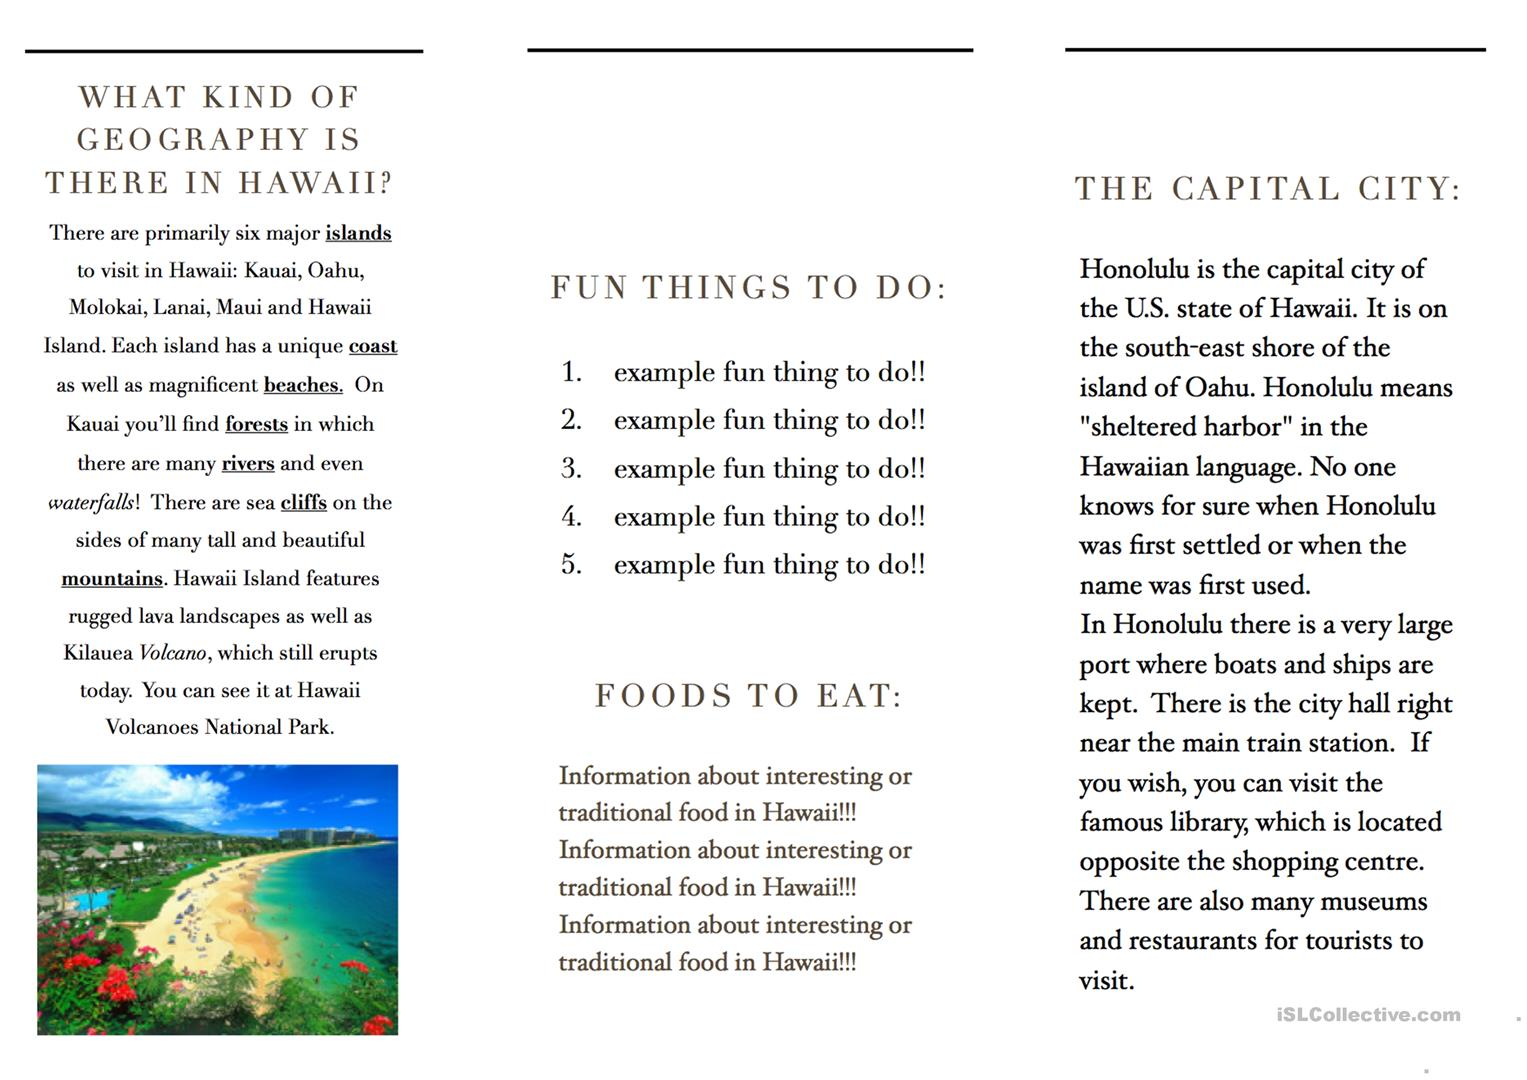 Travel brochure template and example brochure worksheet free esl printable worksheets made by for Printable travel brochure